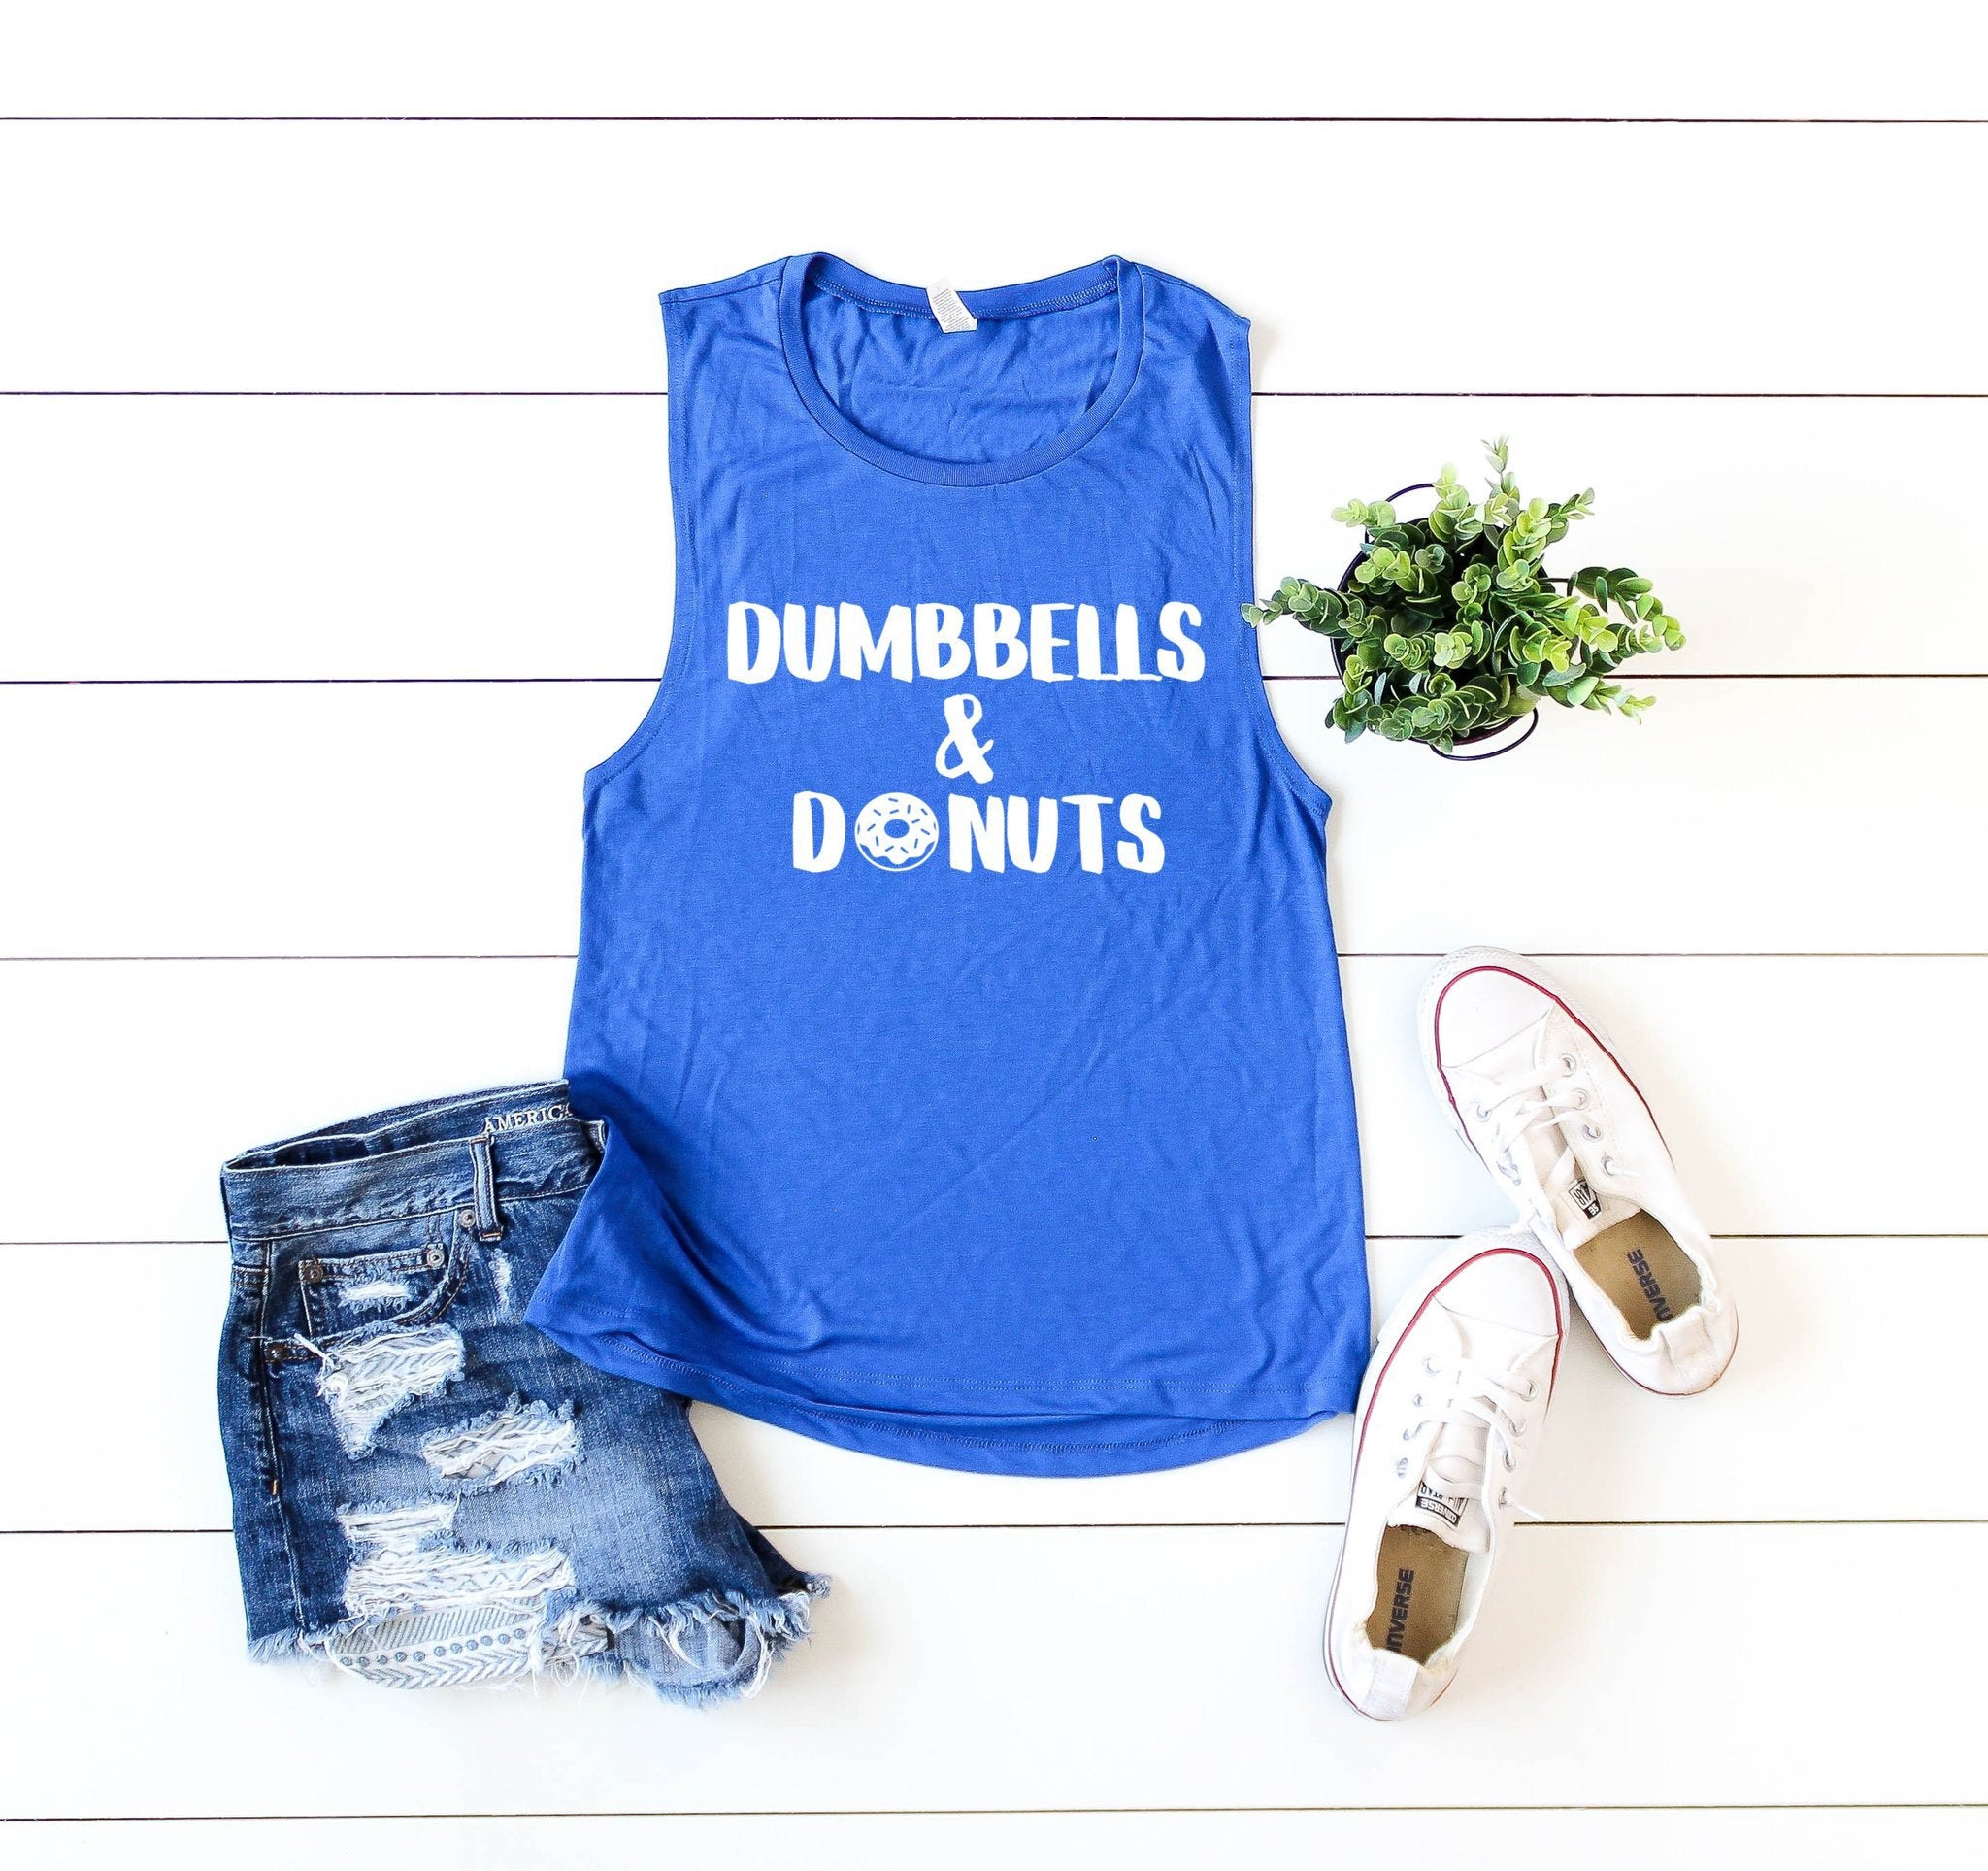 Dumbbells and Donuts - Nine 16